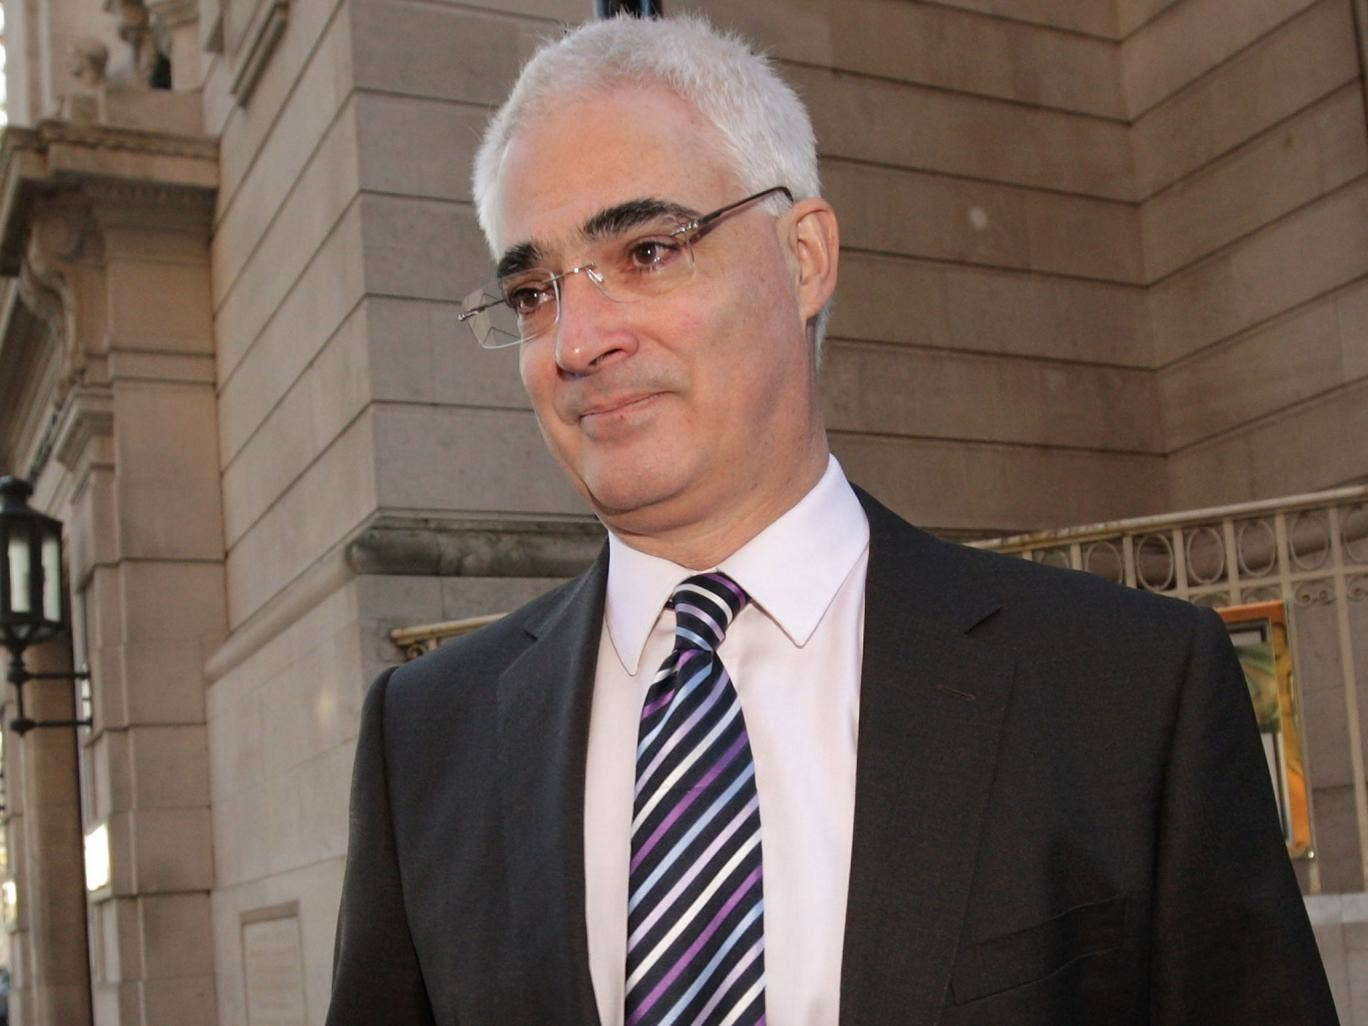 Alistair Darling is calling for a new inquiry by the Labour party